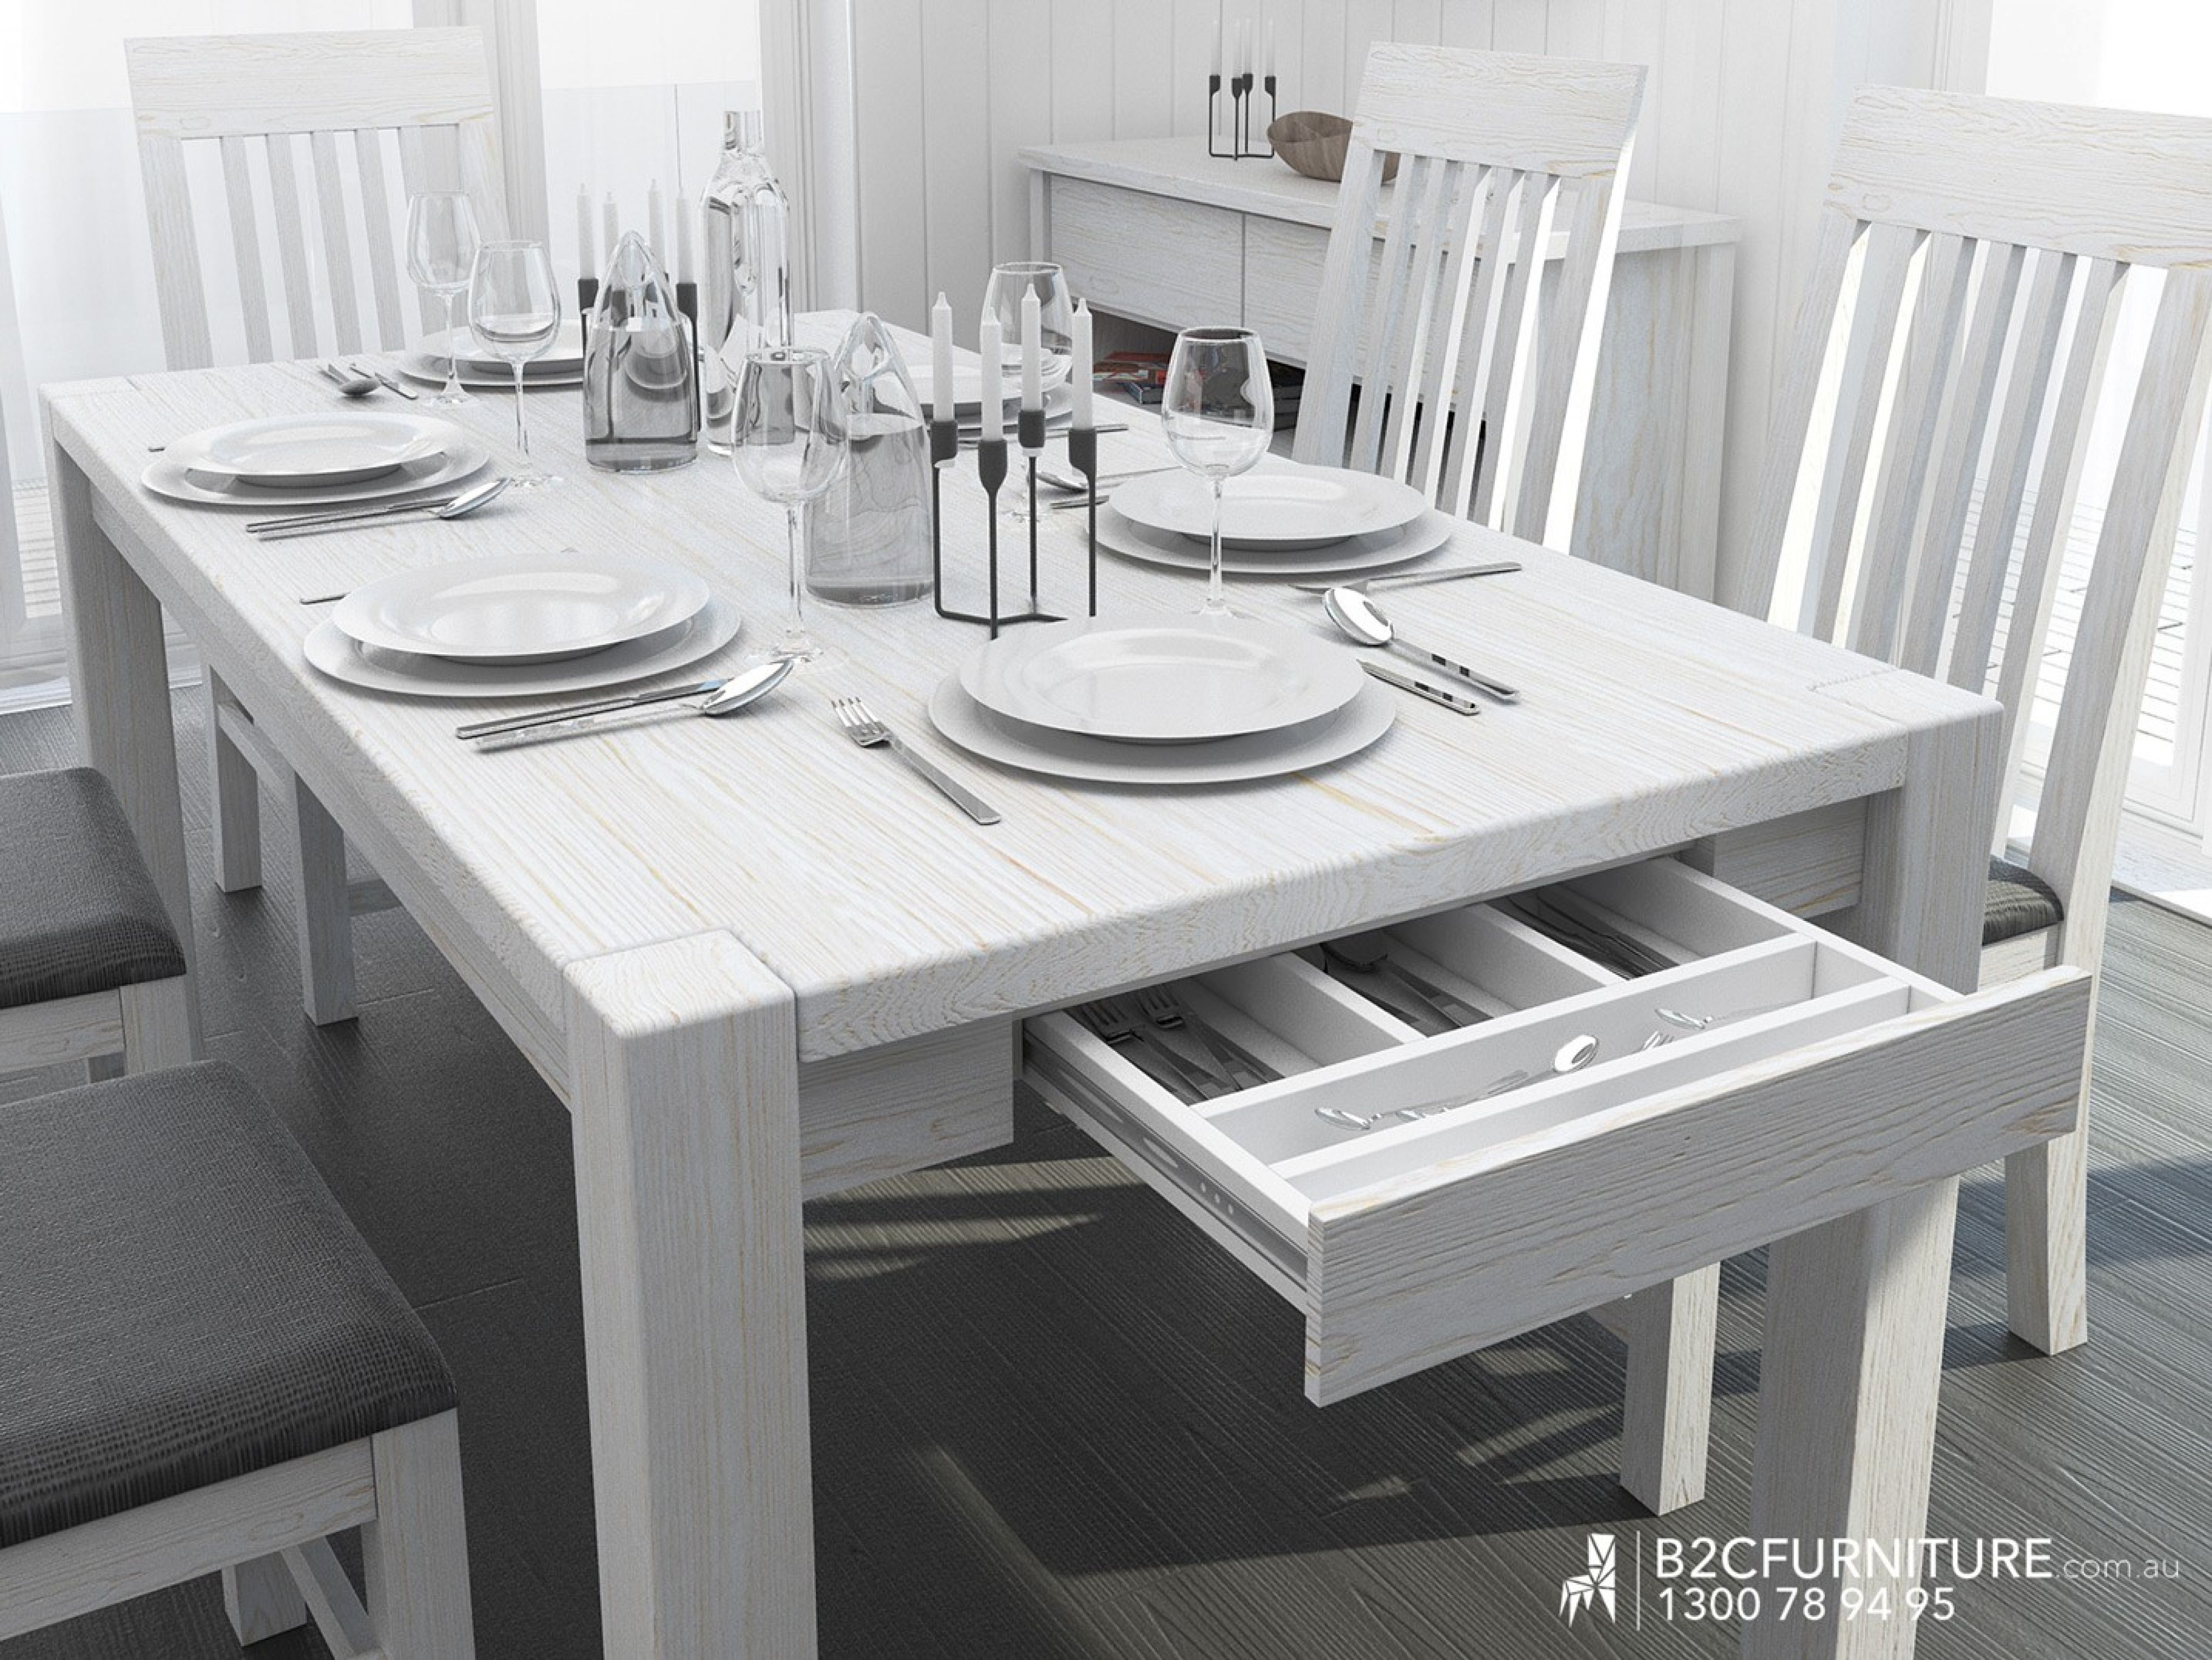 Solid Timber Dining Table Melbourne   Modern Interior Paint Colors Check  More At Http:/